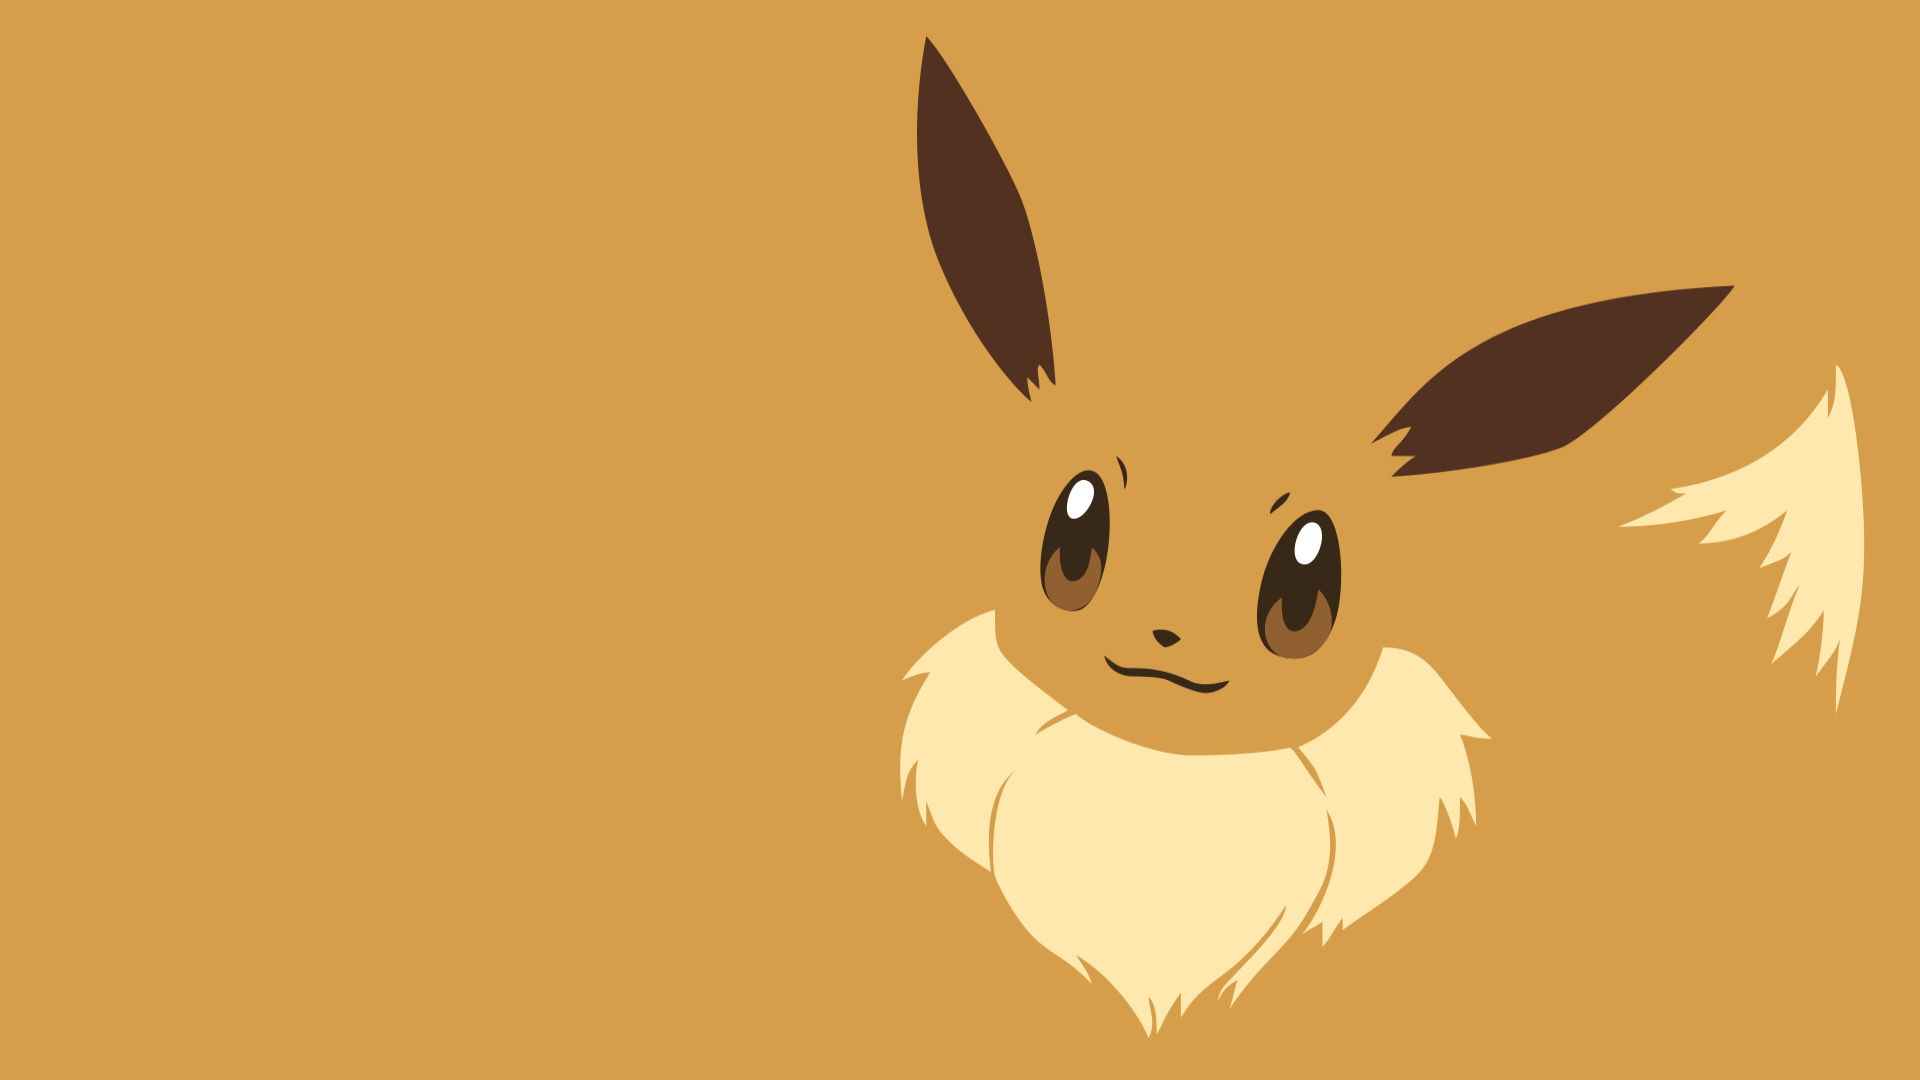 Eevee Pokemon Backgrounds